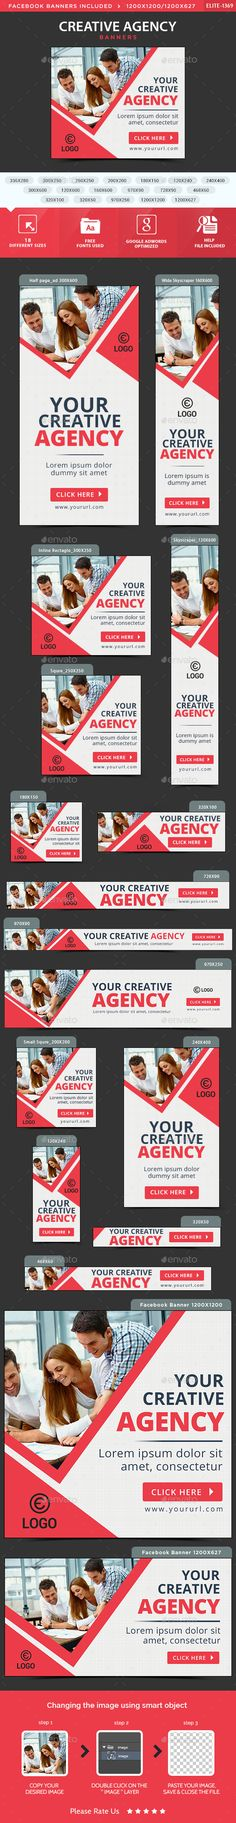 Creative Agency Banners Template PSD. Download here: http://graphicriver.net/item/creative-agency-banners/15677640?ref=ksioks